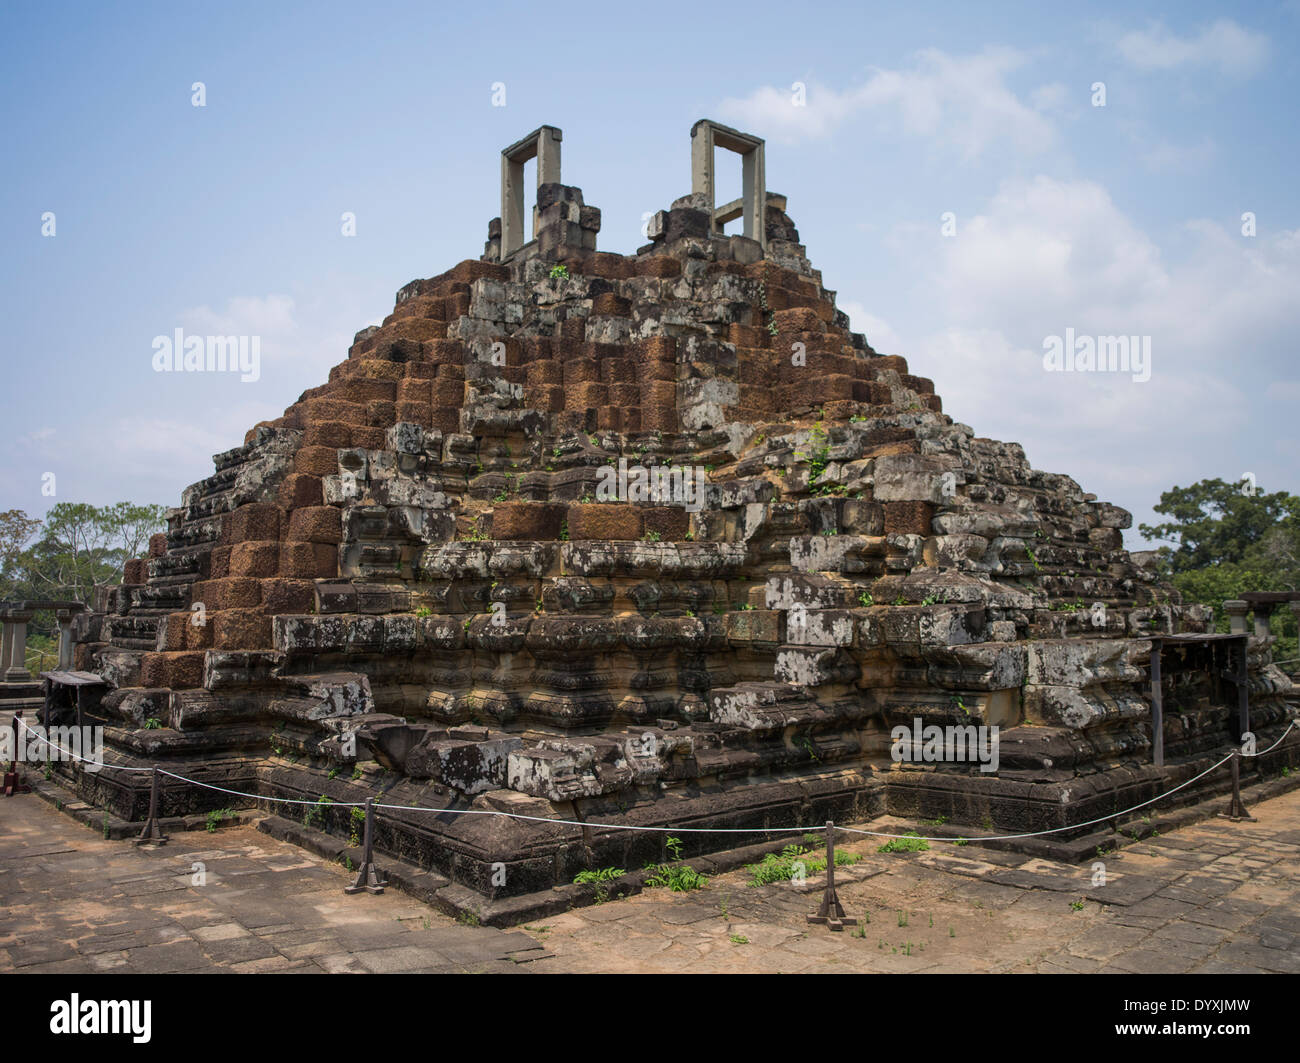 Baphon temple within the walls of Angkor Thom, Siem Reap, Cambodia - Stock Image